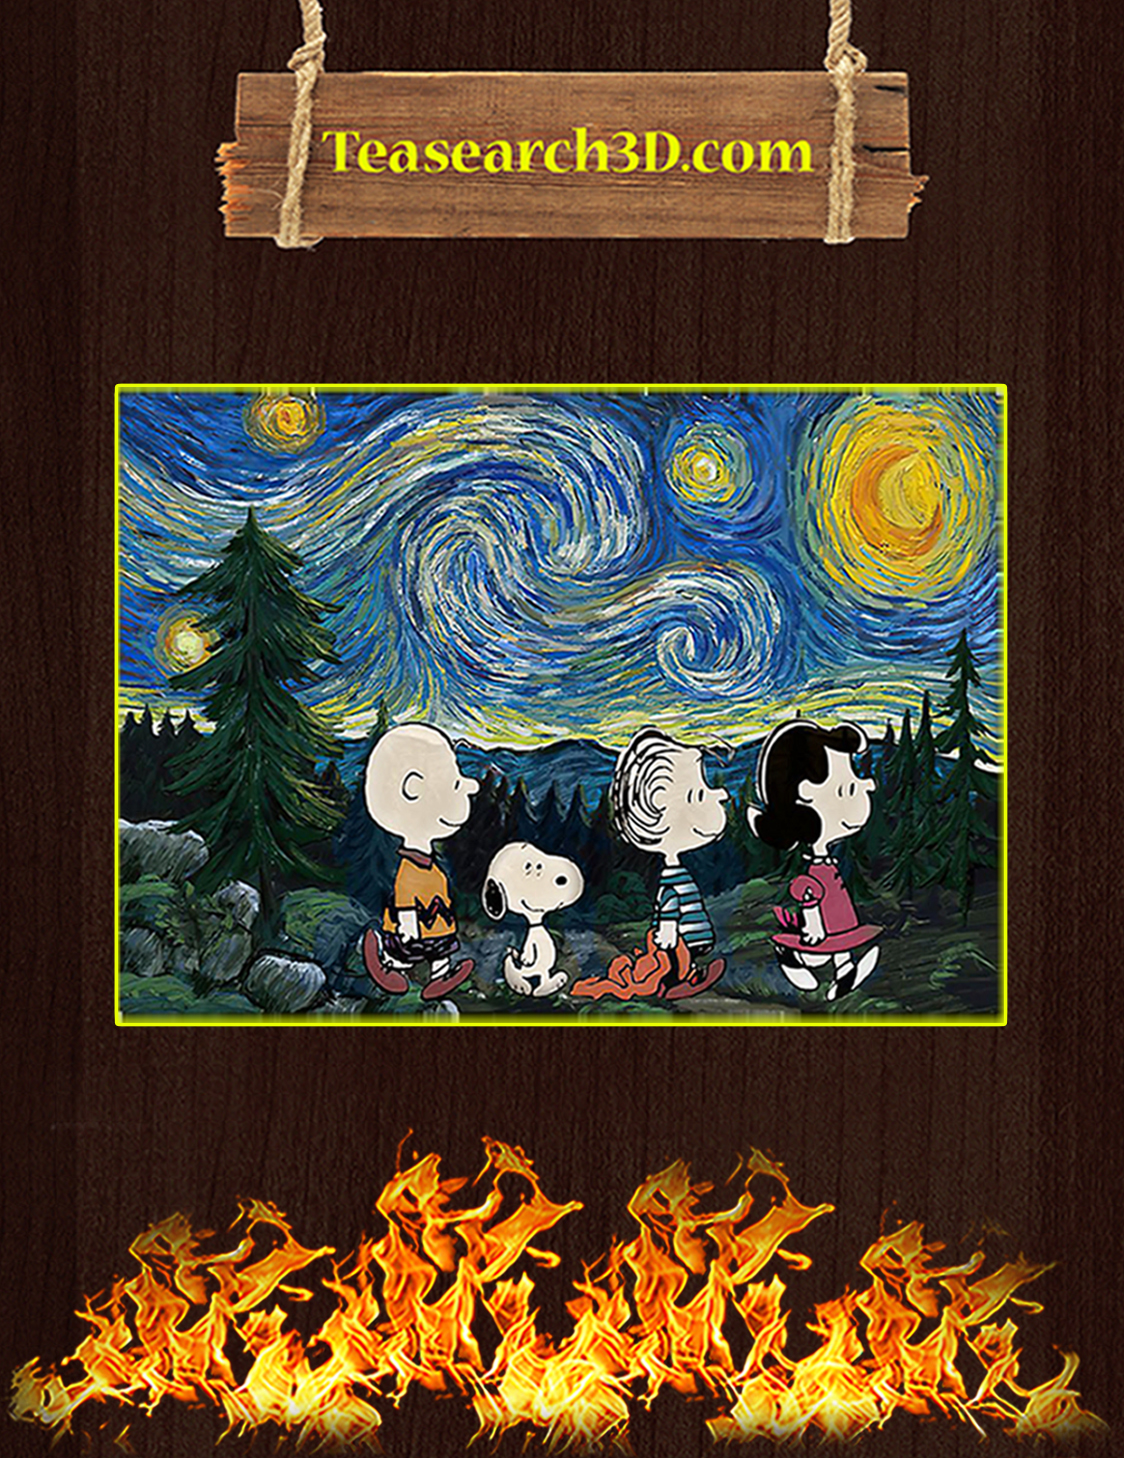 Peanuts starry night poster A3